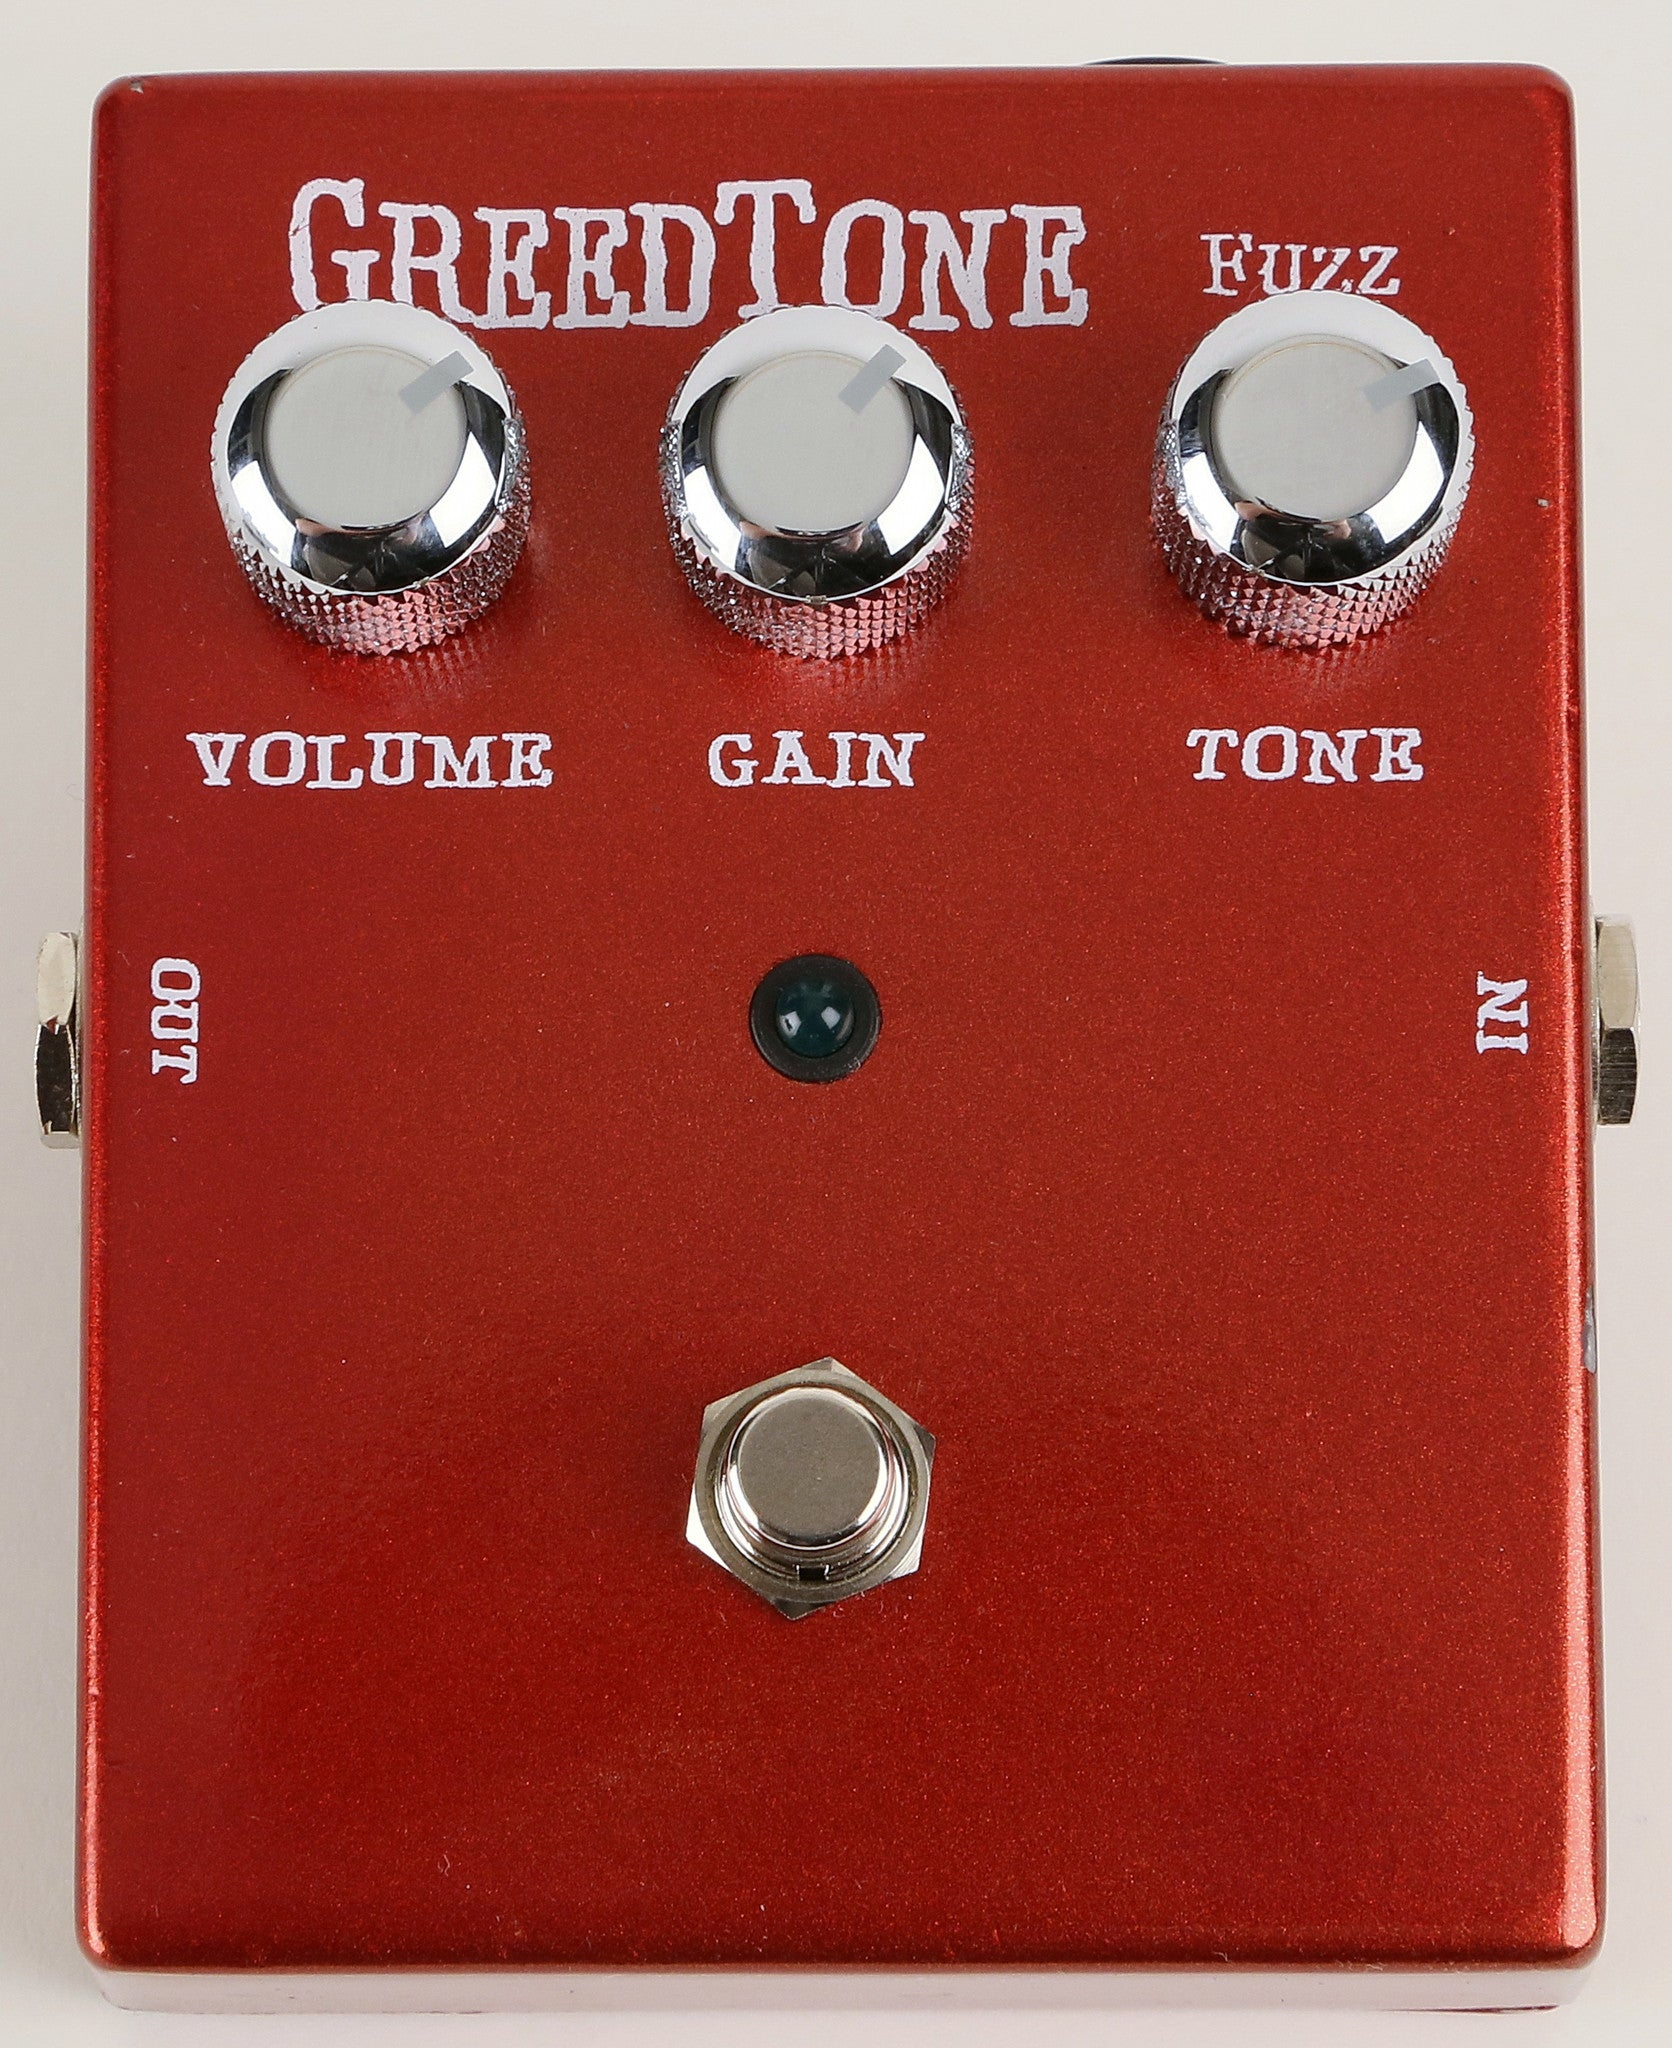 Greedtone Fuzz - Scratch & Dent